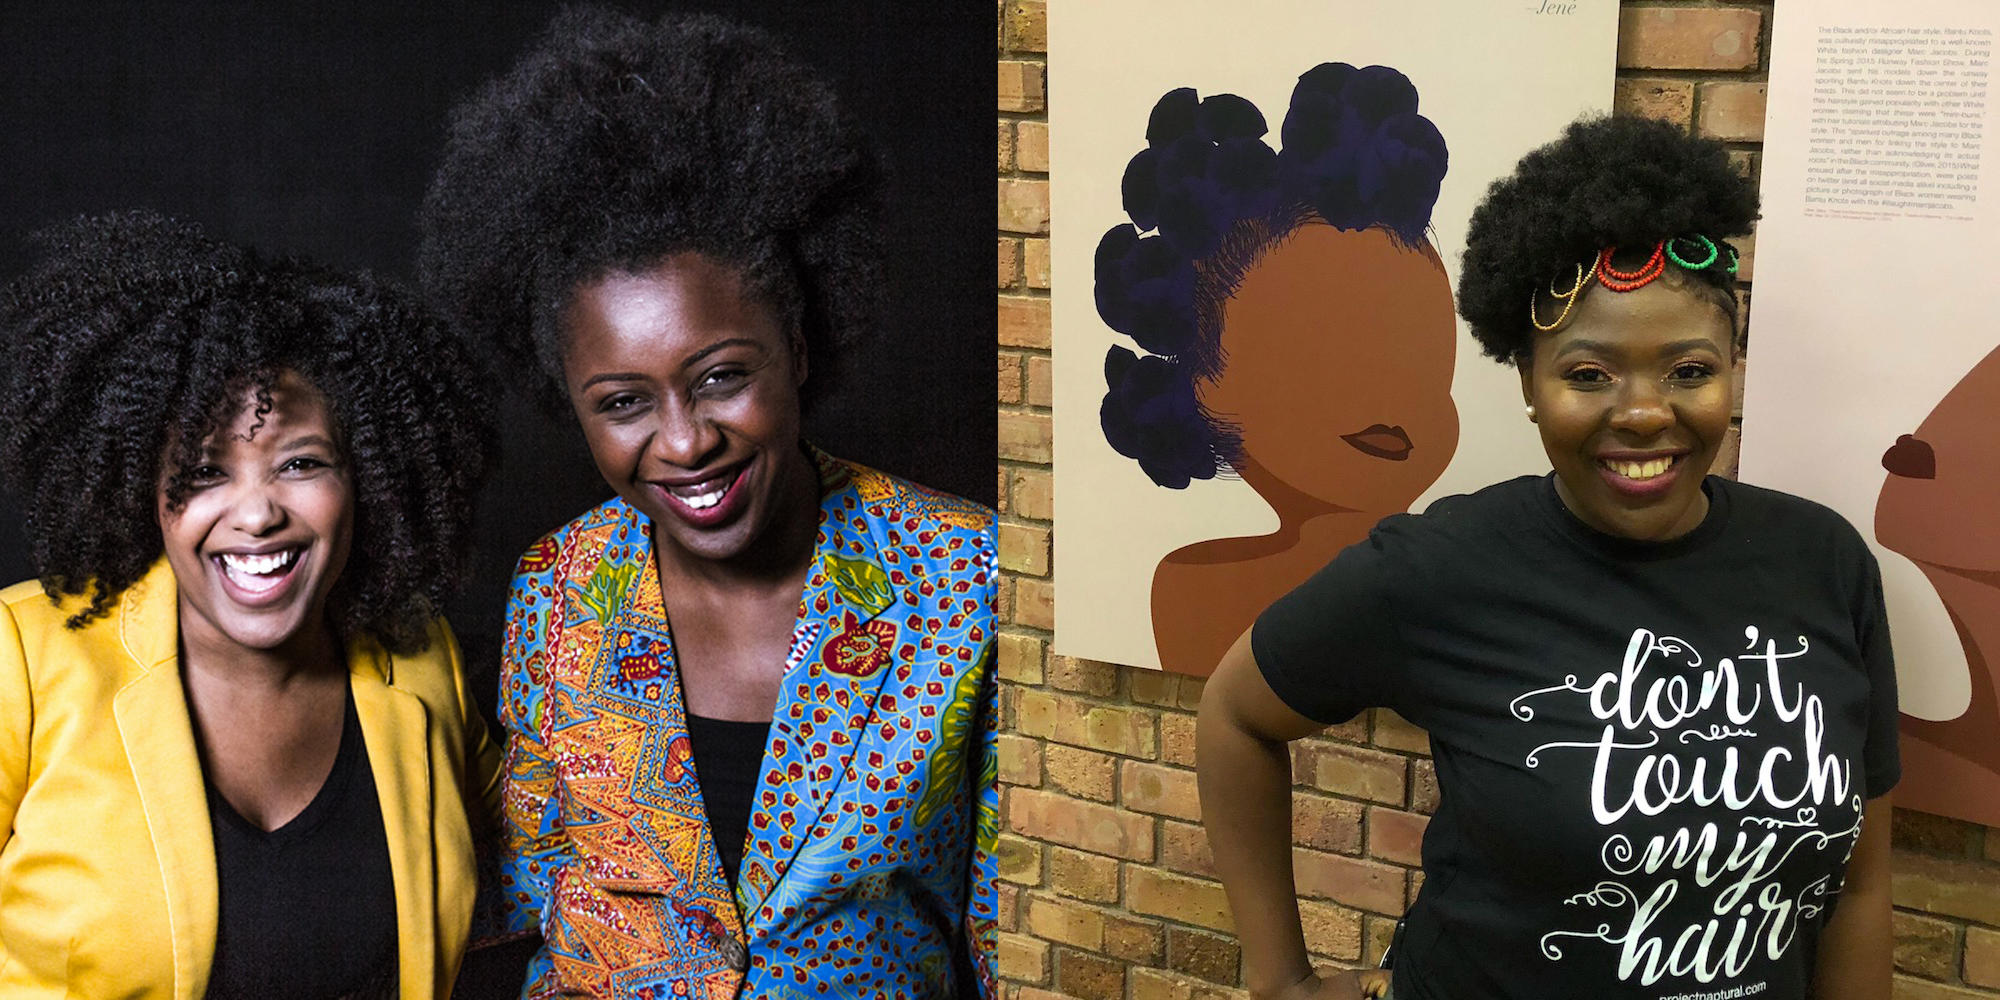 Left photo: Terresa Moses and Sandra Oyinloye. Right photo: Vaughnetta Ngaling next to the art that matches her hairstyle.